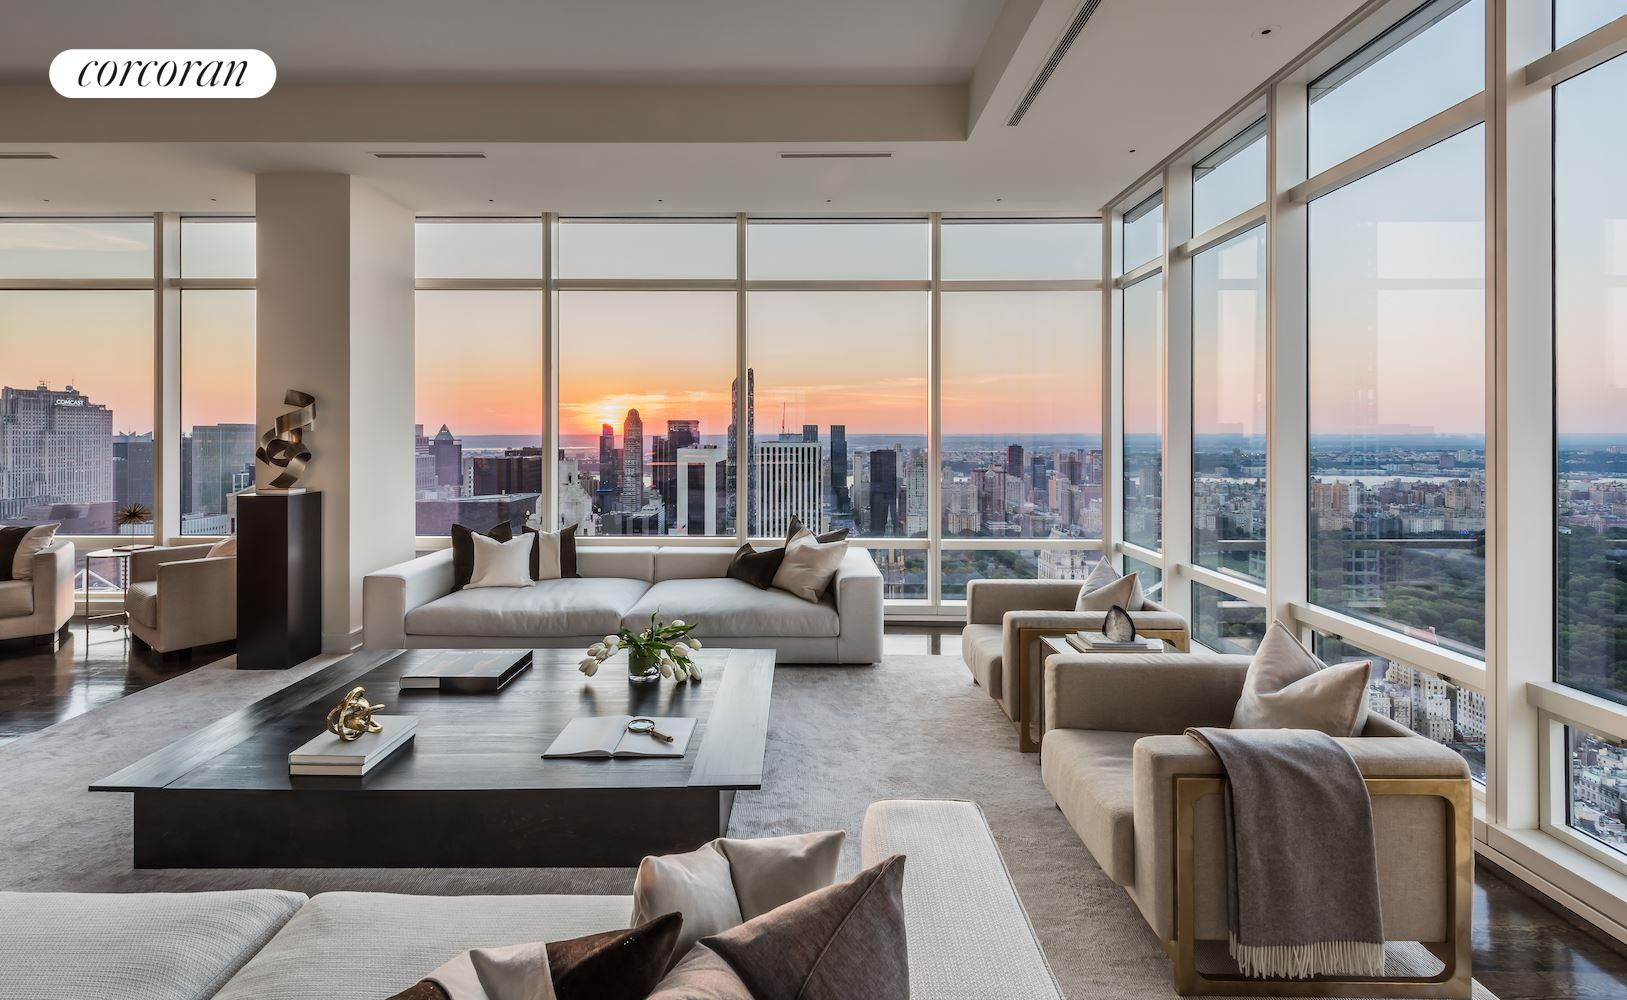 With over 2500 Square Feet of windows offering uninterrupted North, West and South exposures, this Penthouse has one of the more impressive views ever to hit the market.Through 200 linear feet of 12 foot high glass, you have an open vista spanning from the East River to the Hudson and from the Freedom Tower to the George Washington Bridge. at well over 750 feet in the sky, on a clear day you can see beyond the rivers to the Poconos, Catskills, George Washington Bridge and even to the Atlantic Ocean and the Eifel Tower.The North side of this expansive residence has a large loft-like corner living-room with open dining area. This 34ft x 34ft room is the perfect place to unwind while enjoying the spectacular endless views of the entire upper half of Manhattan Island. The dining area leads to an eat-in kitchen with all the expected state-of-the-art appliances. Just like the north faade of the home is reserved for the public areas, the south faade reserved for the master suite. This is the ideal layout to have optimal natural lighting throughout different phases of THE day. When it is time to move from the public to the private quarters or vica versa, you do so by strolling down the central hallway. At 20x 6 this gallery is perfectly proportioned for showcasing art.At 35x19 the jaw-dropping master bedroom is one of the most palatial sleeping quarters anywhere. With separate his and hers bathrooms flanking a dressing room and two distinct walk-in closets, this is a gracious master suite. These four rooms each have wall to wall, floor to ceiling glass; a true standout even amongst its impressive peers. There is no building within six blocks in any direction so there will never be a need to close the curtains. The gallery between the public and the private quarters also offers access to two spacious bedrooms, each with an en-suite bathroom and ample closet. Each of these West facing bedrooms has the size and Park views that would make it a desirable master in any other home